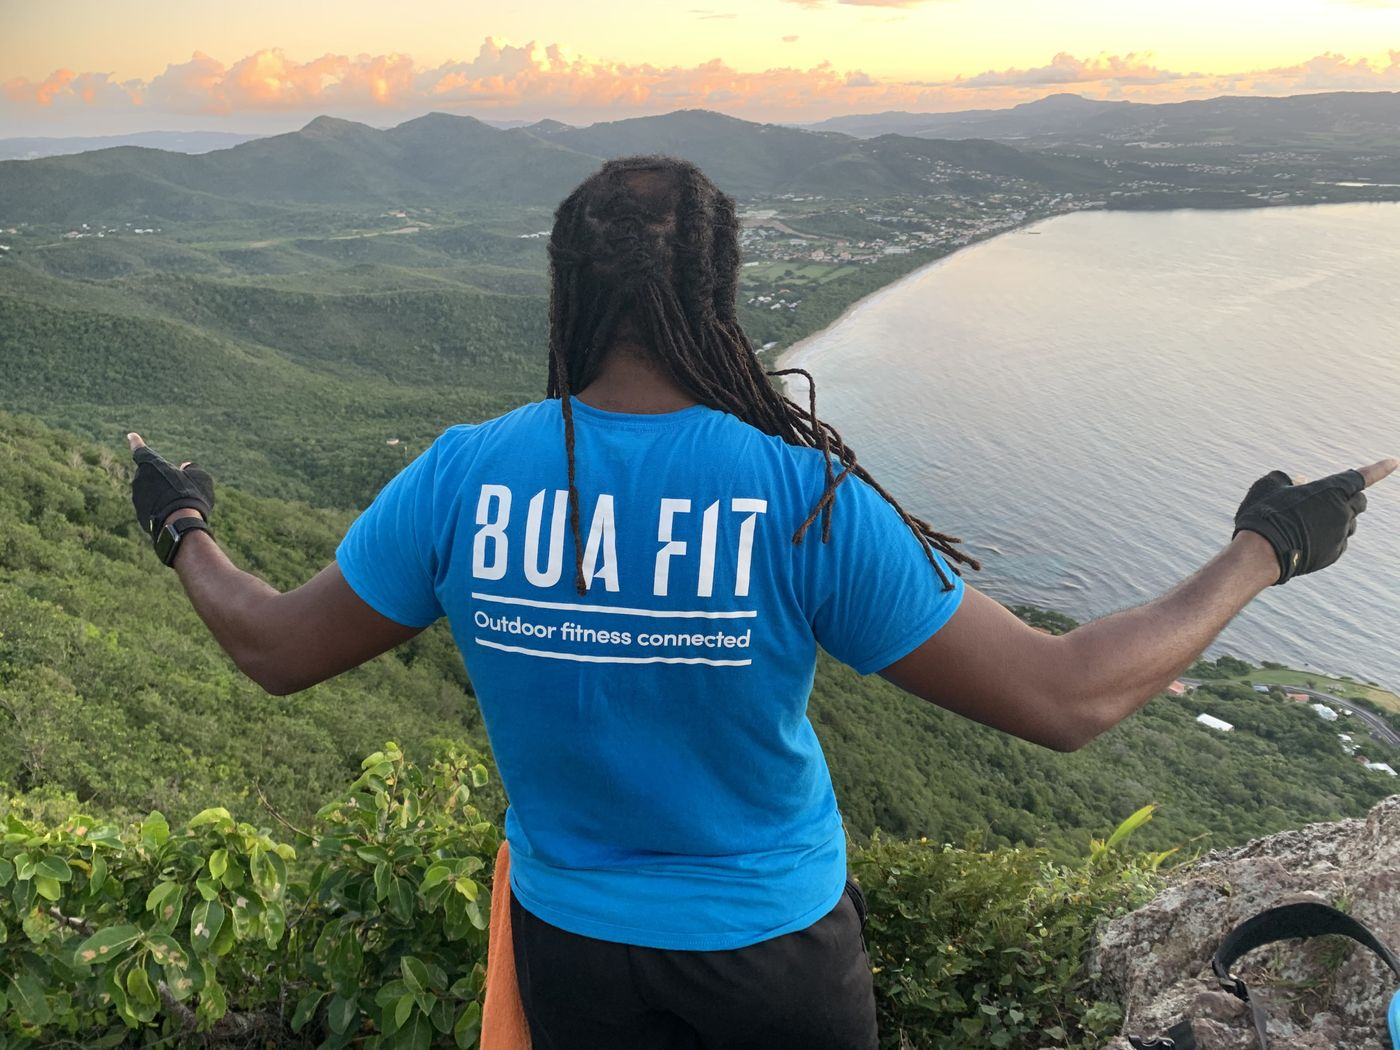 Let's lift Bua Fit on top of the world 👊🏾